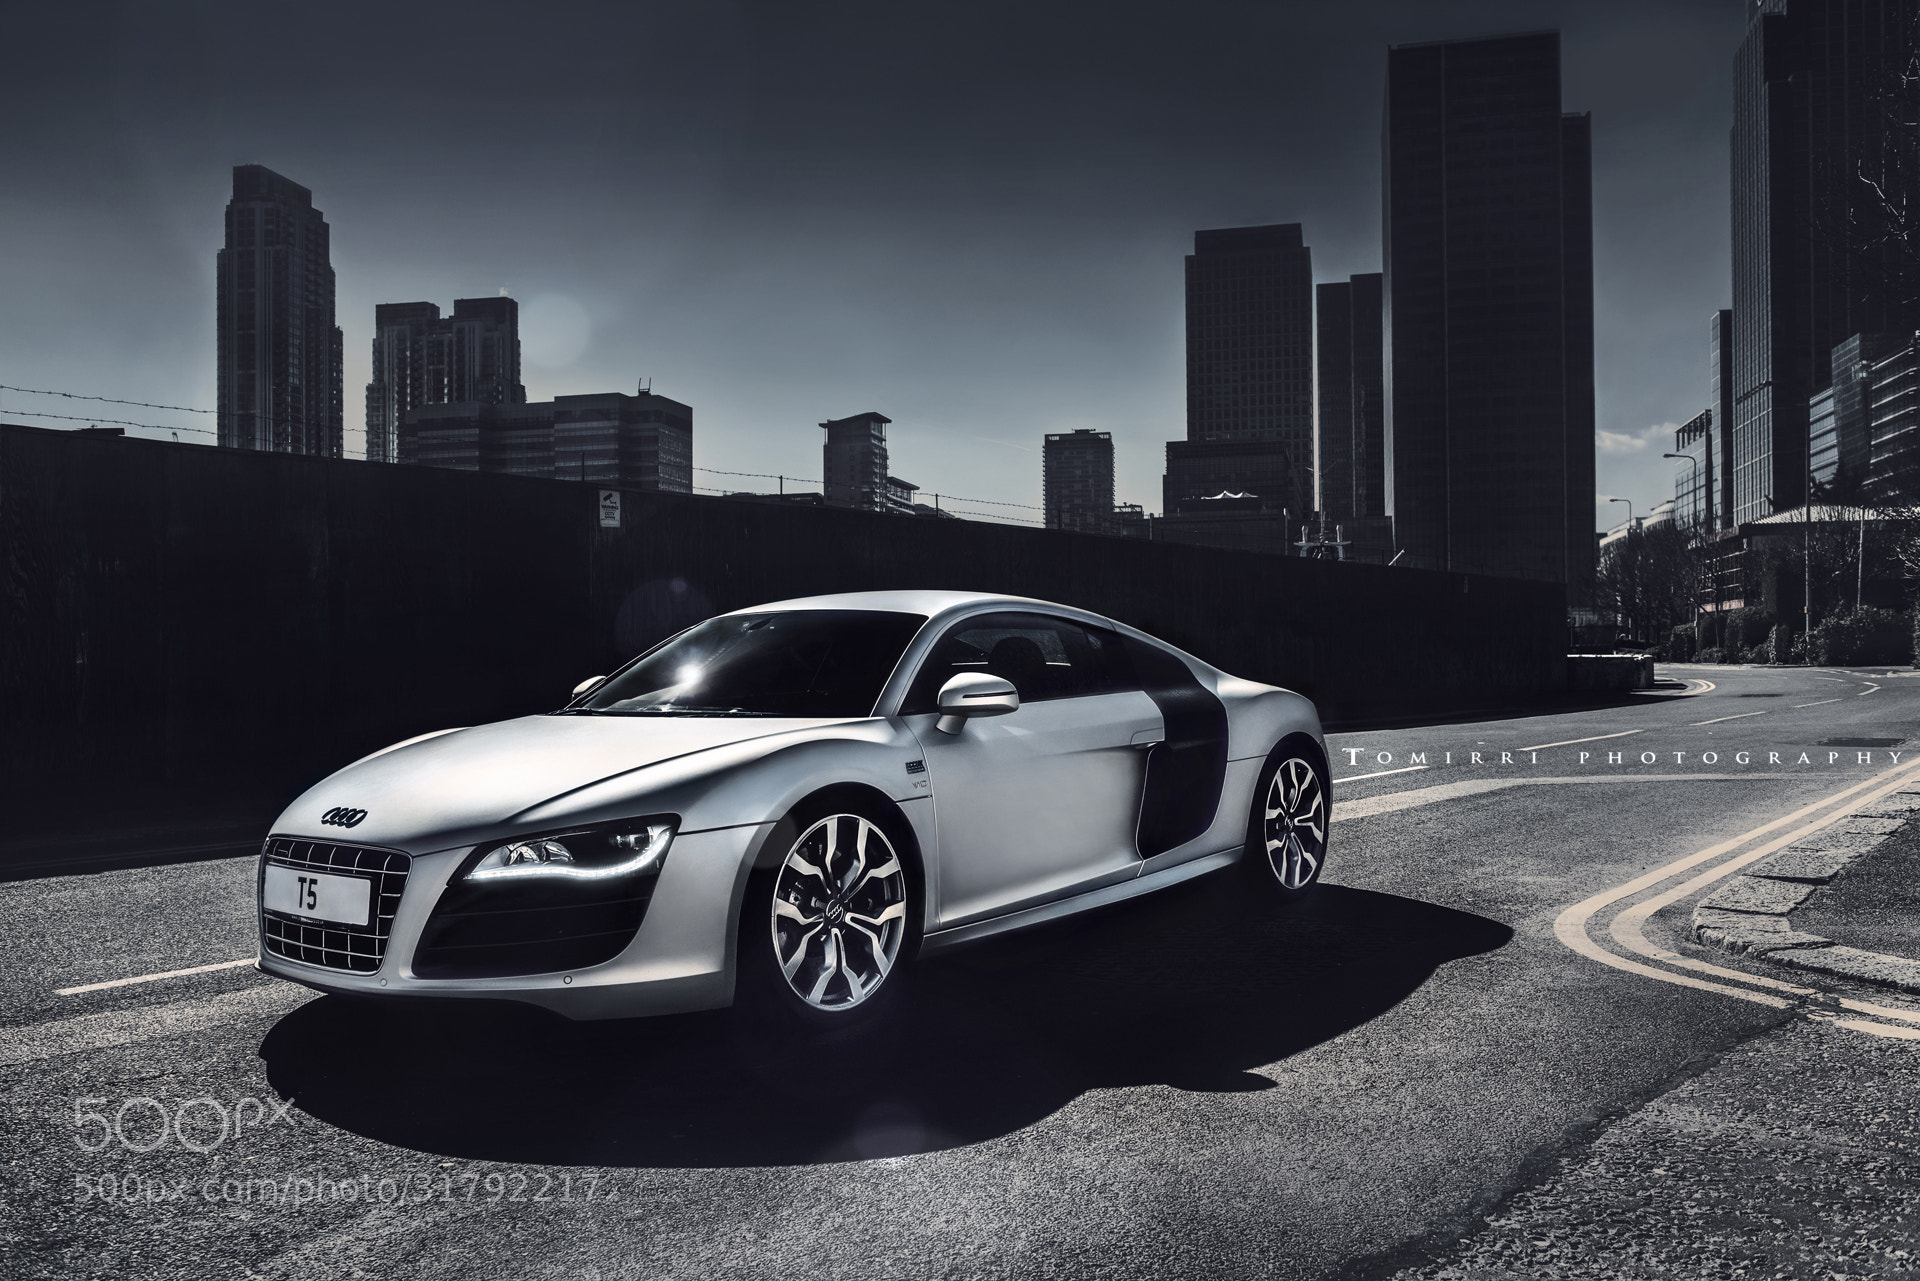 Photograph Audi R8 V10 by Tomirri photography on 500px